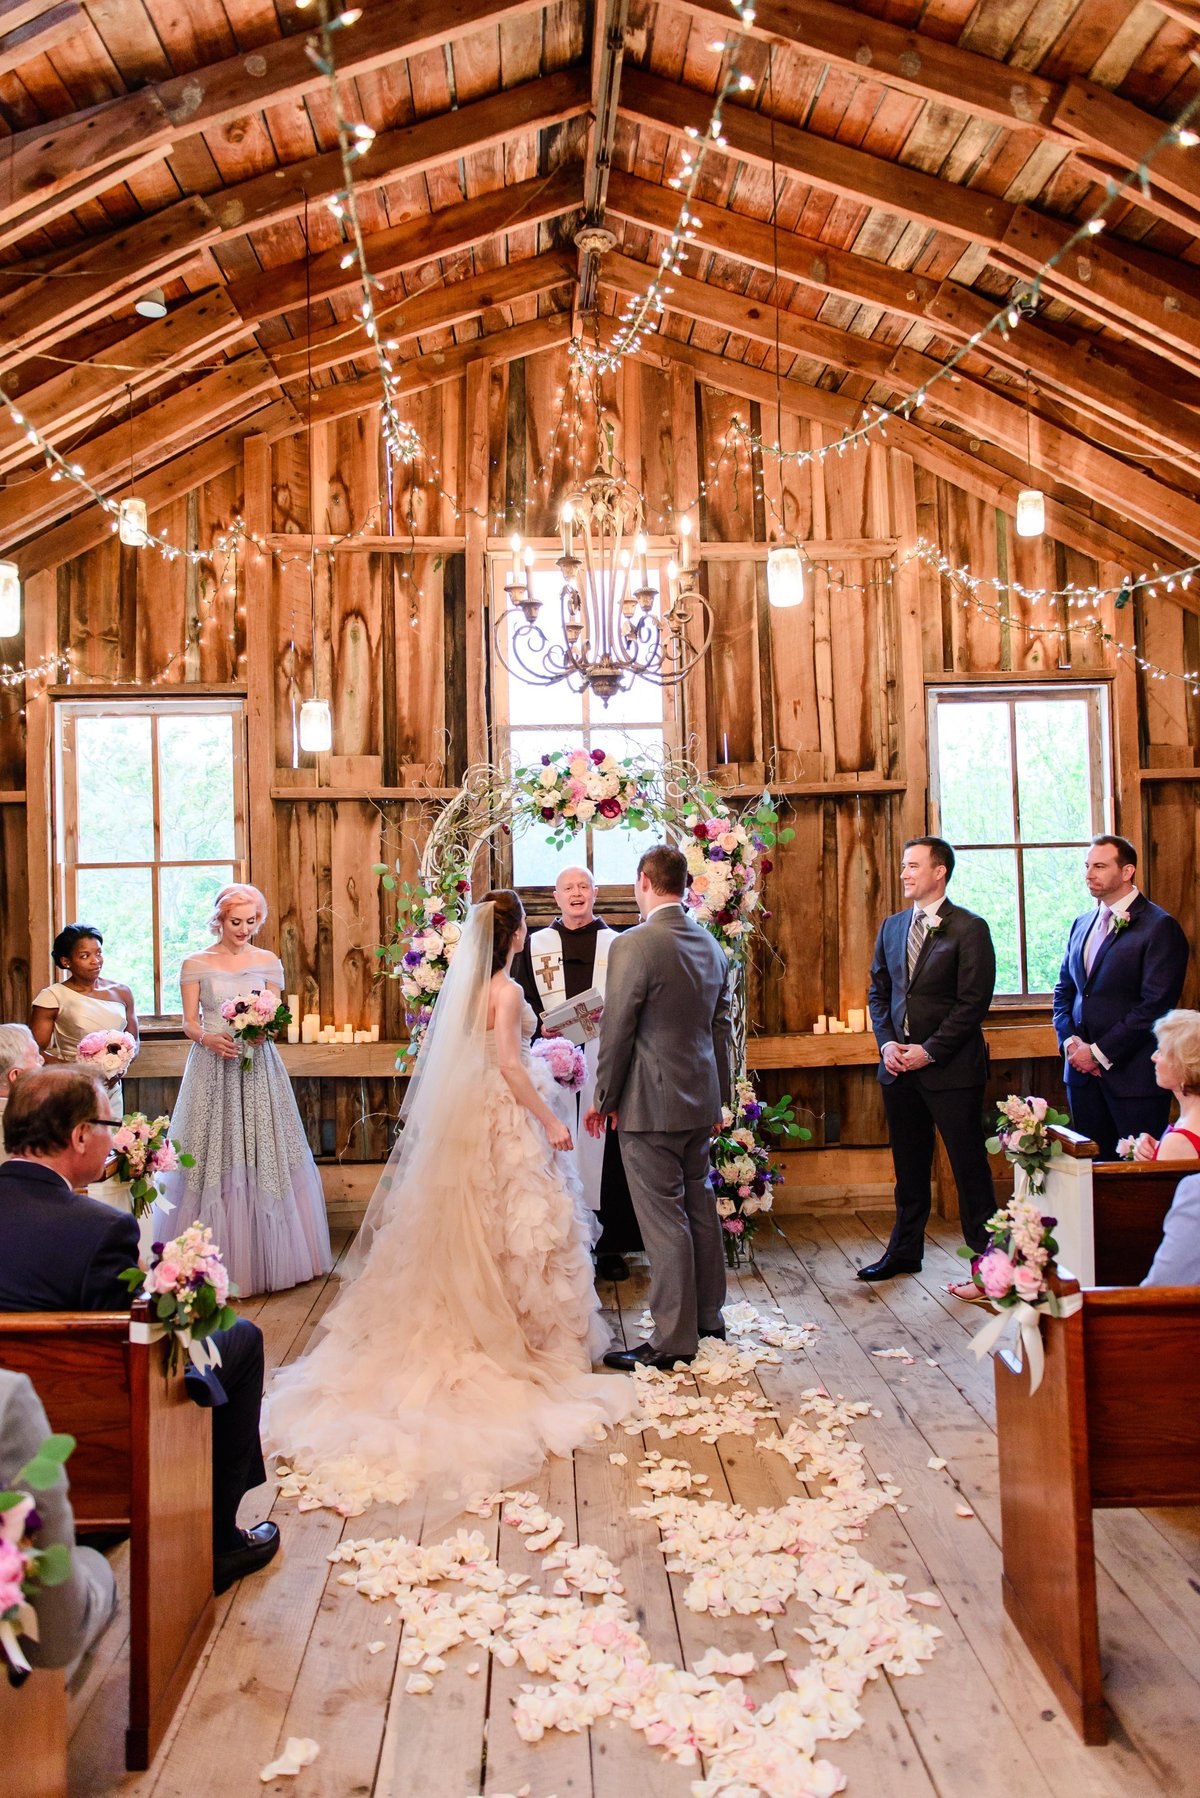 Wedding ceremony in barn at glasgow farms virginia